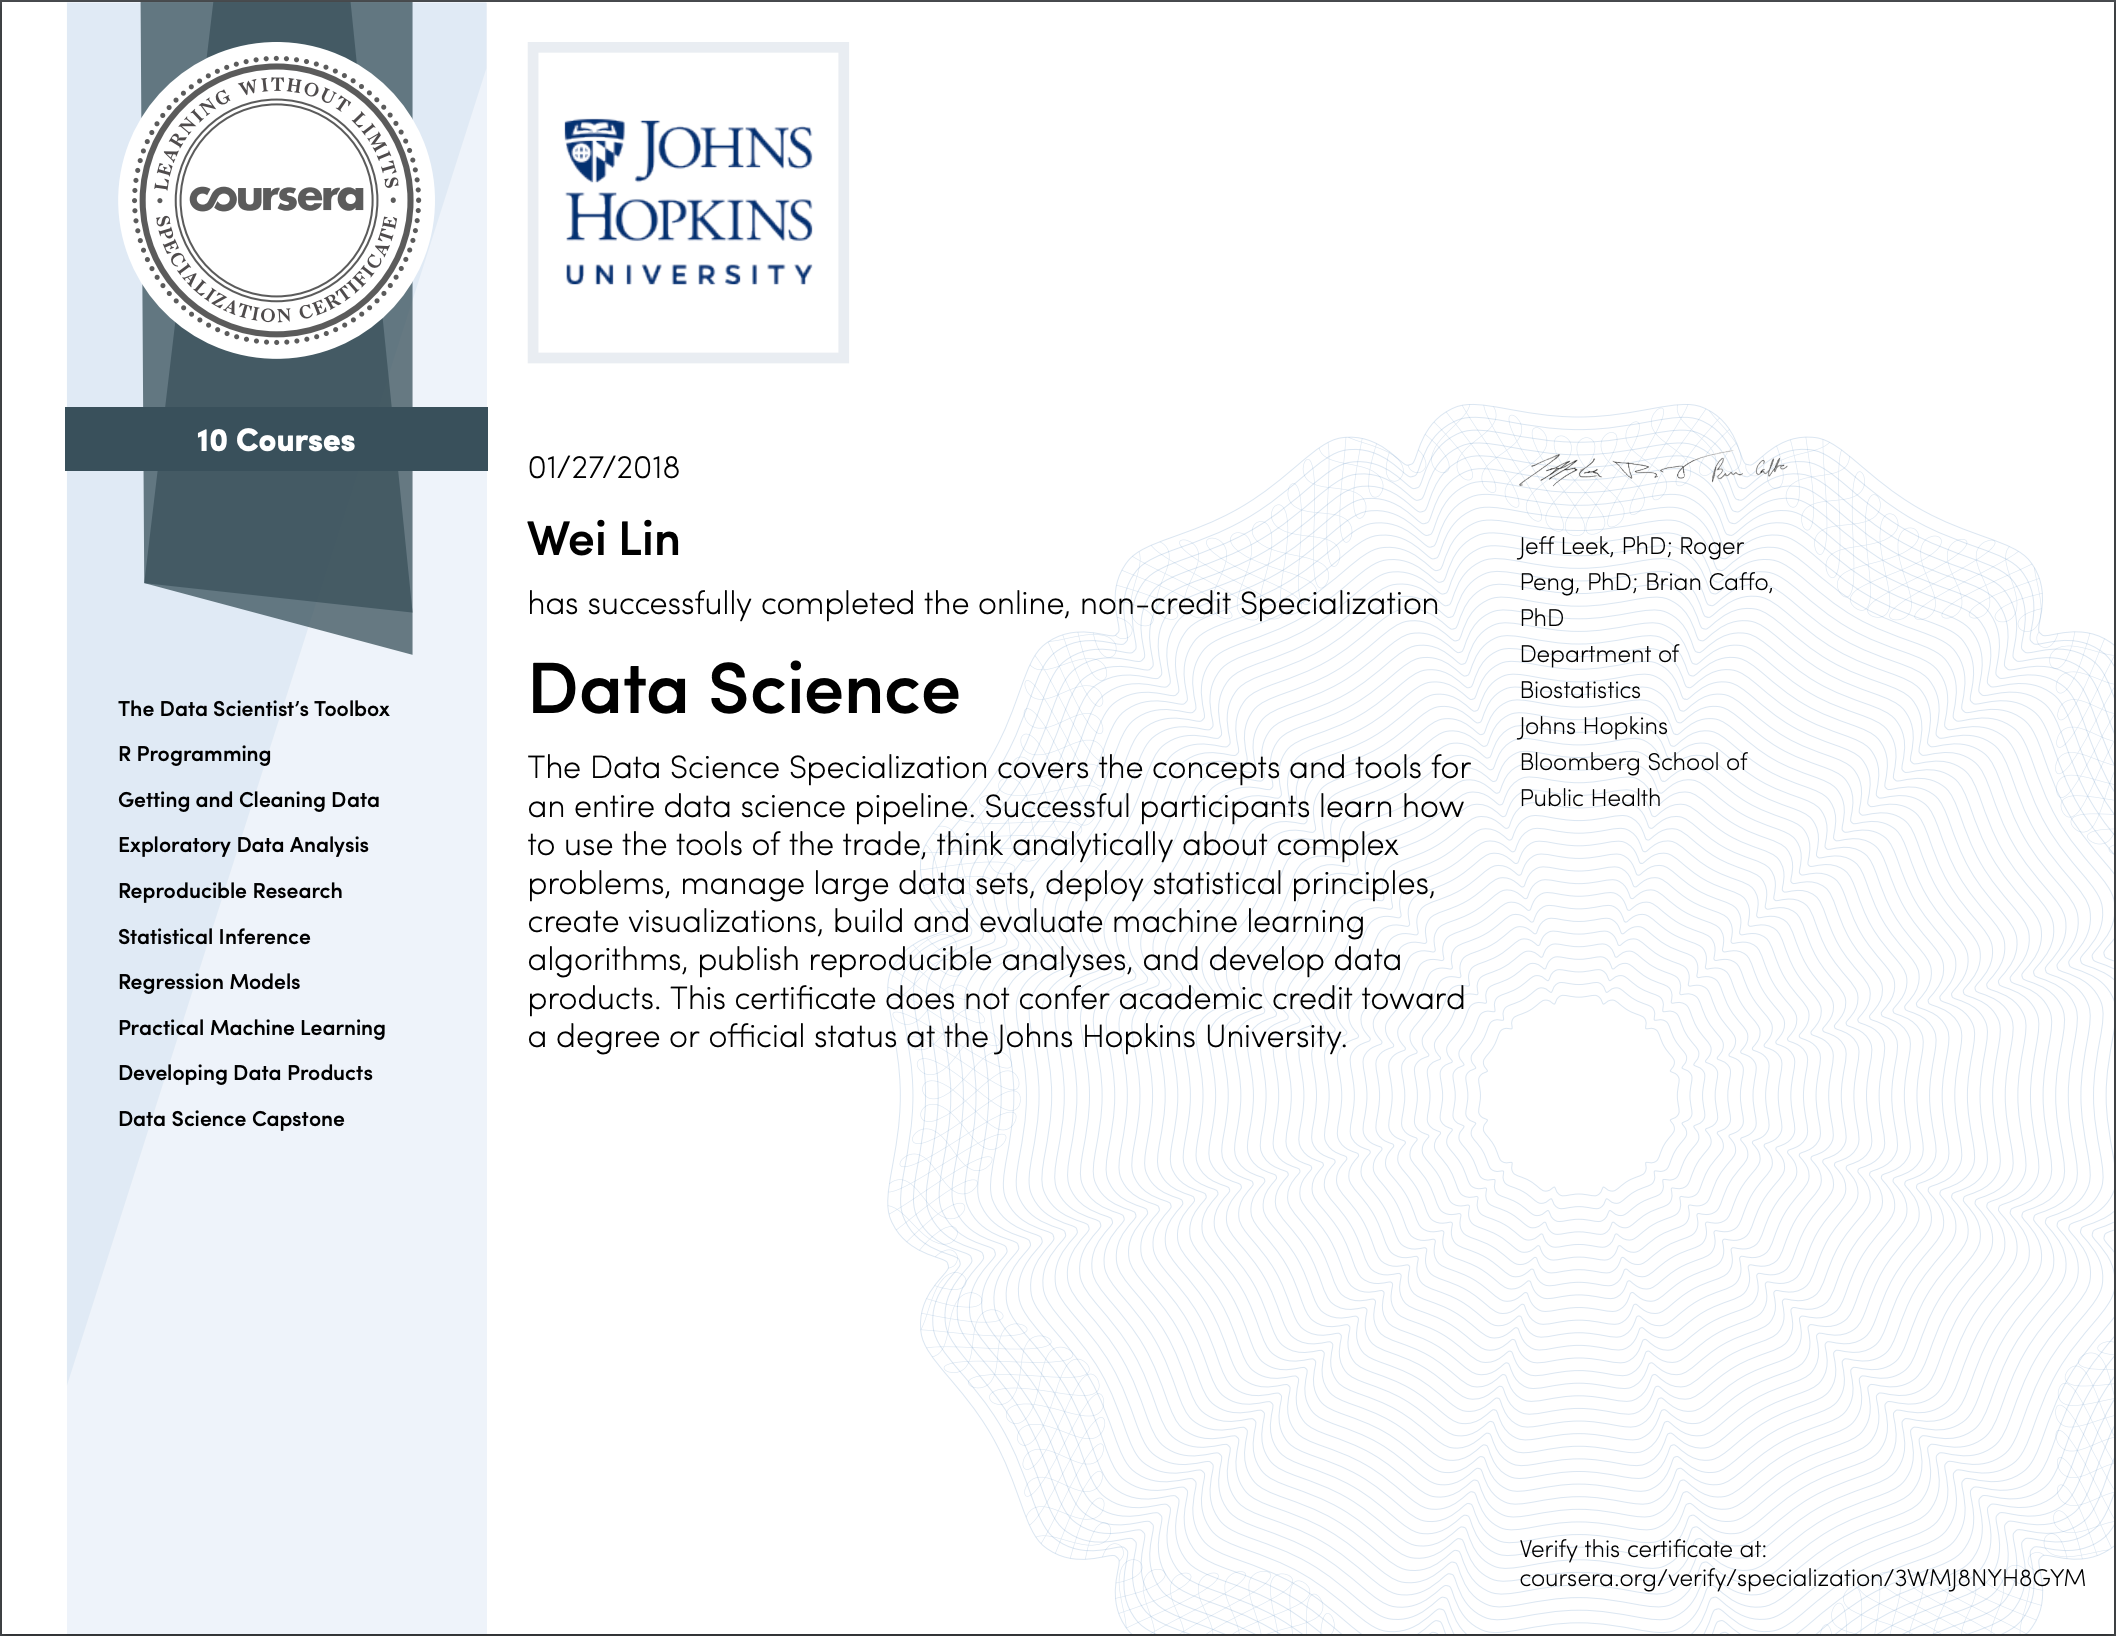 A Review of JHU Data Science Specialization